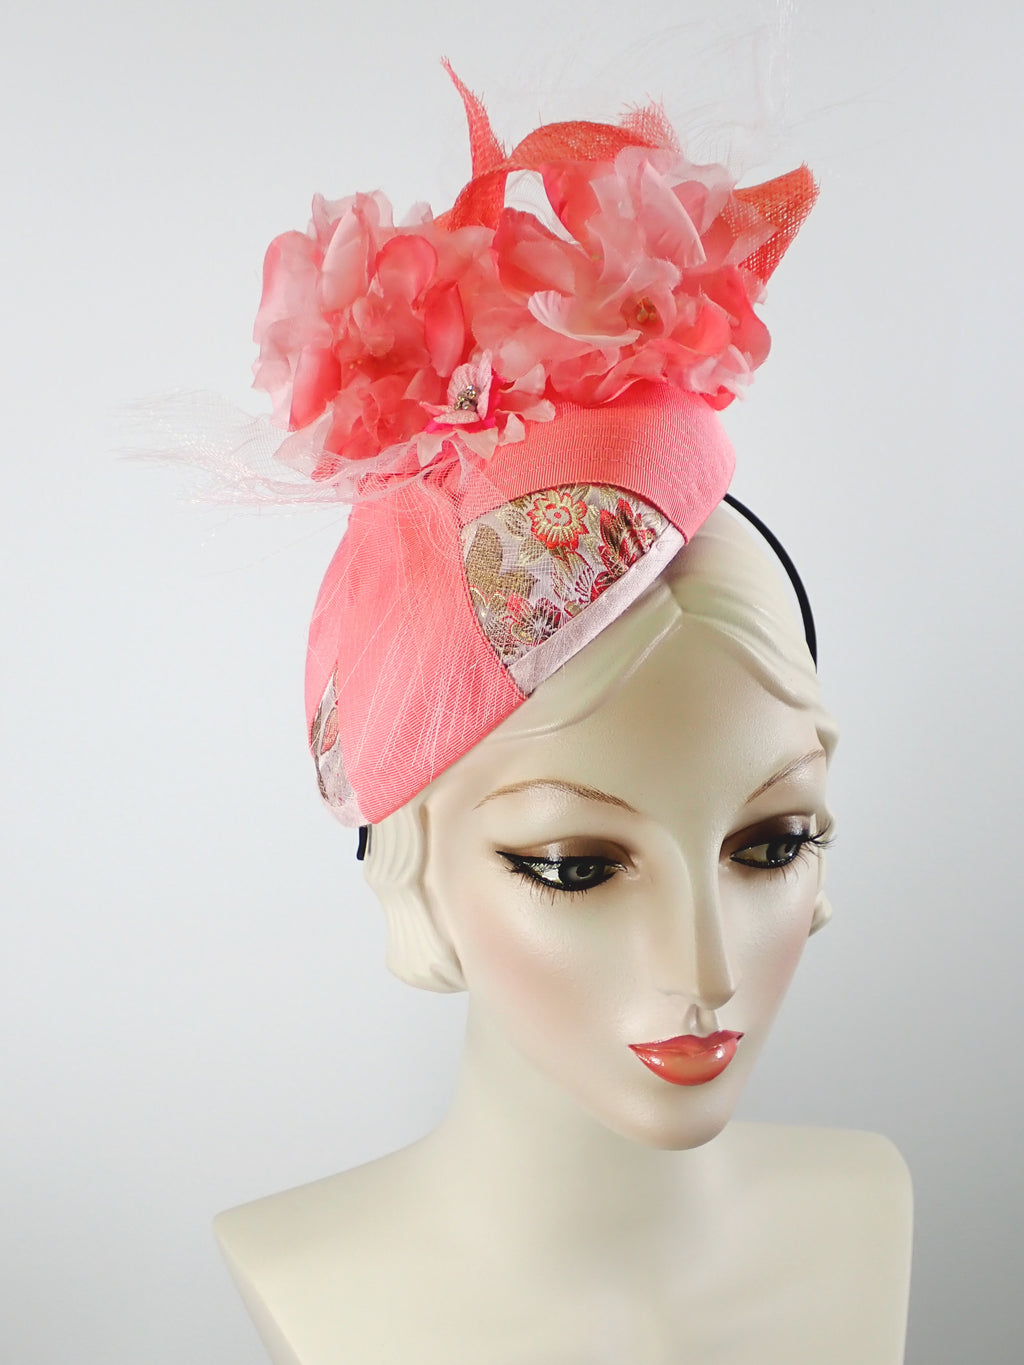 Women's Coral, and Pale Pink Ribbon and Sinamay Fascinator Hat for Kentucky Derby - Summer Fascinator for Church